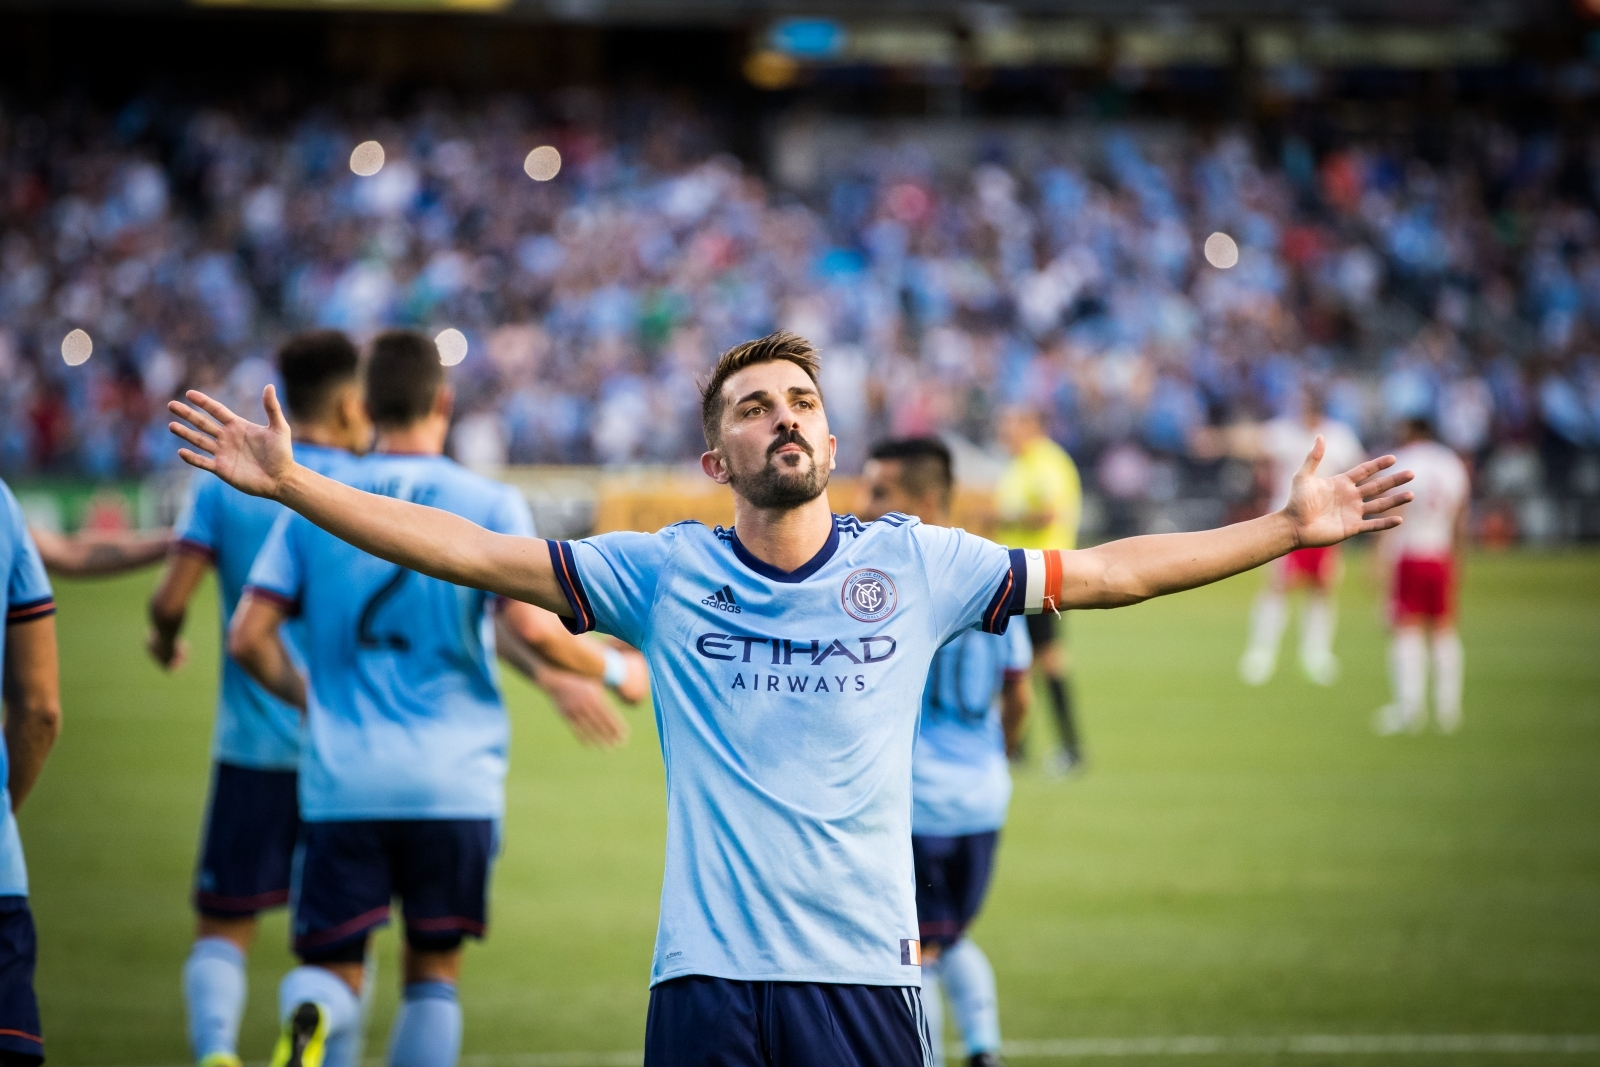 David Villa returns to Spain squad to face Italy and Lichtenstein